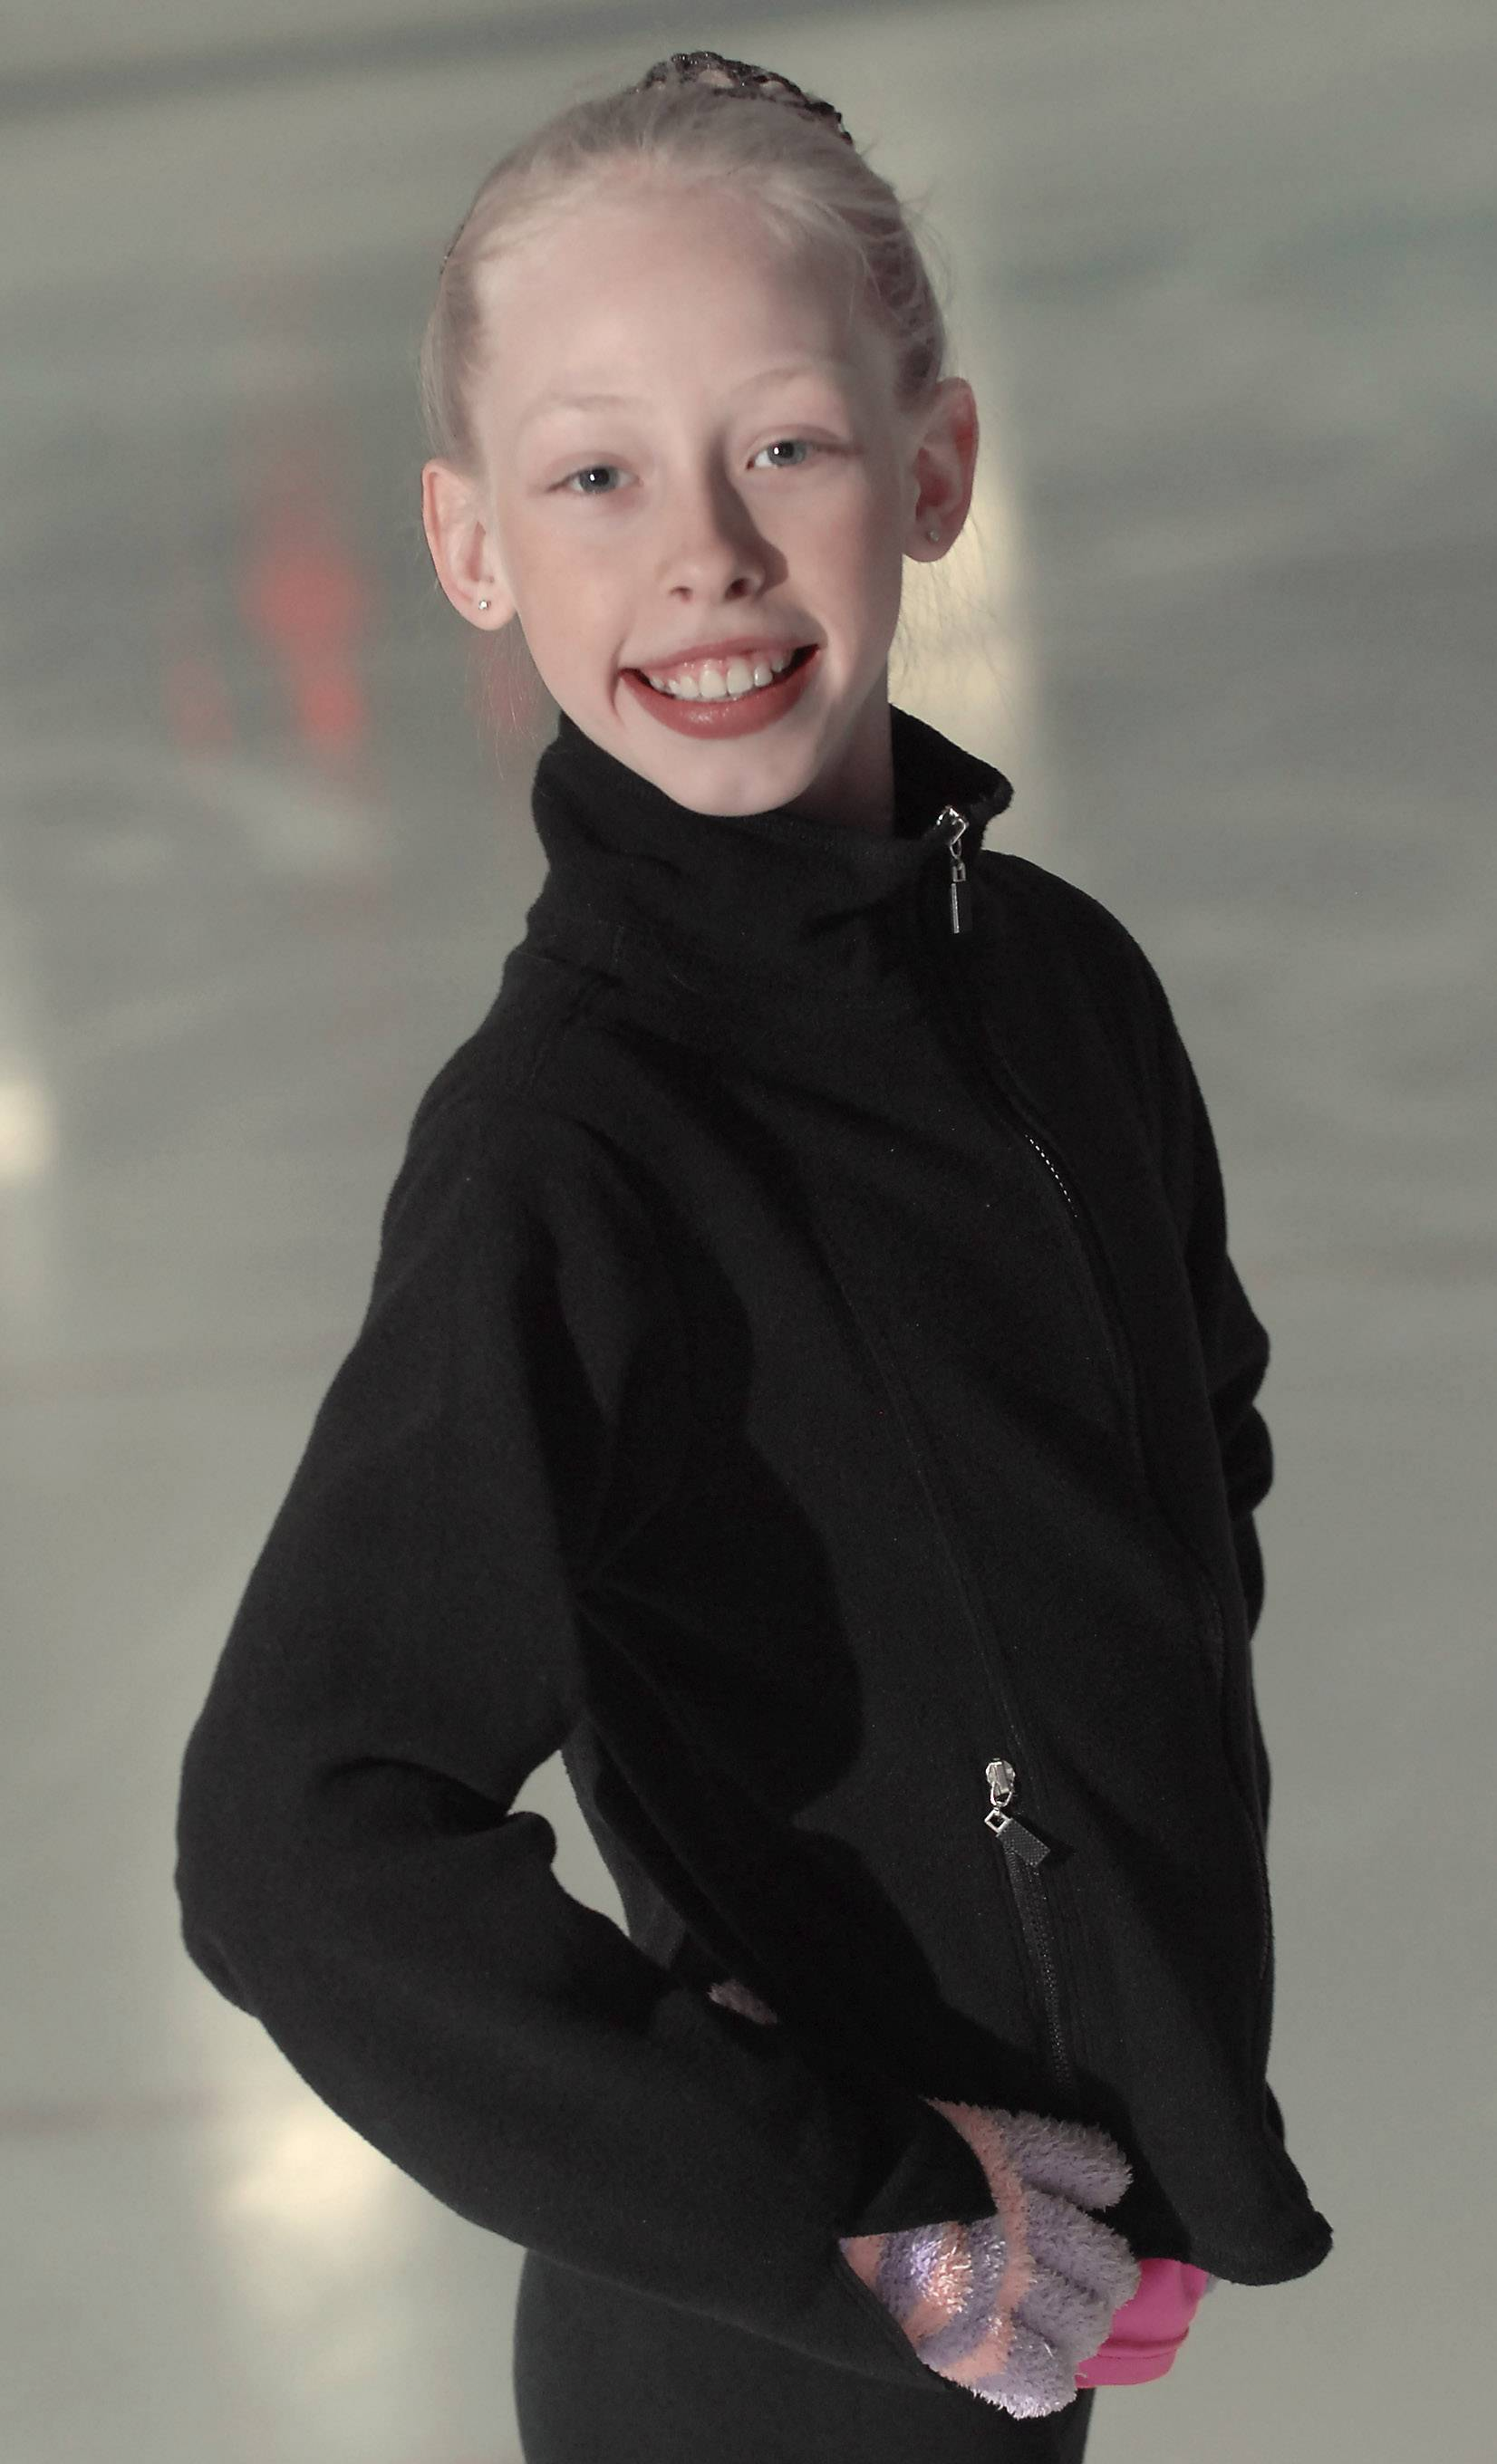 Figure skater Bradie Tennell, then 12, poses in 2009 while preparing for a show in Skokie.